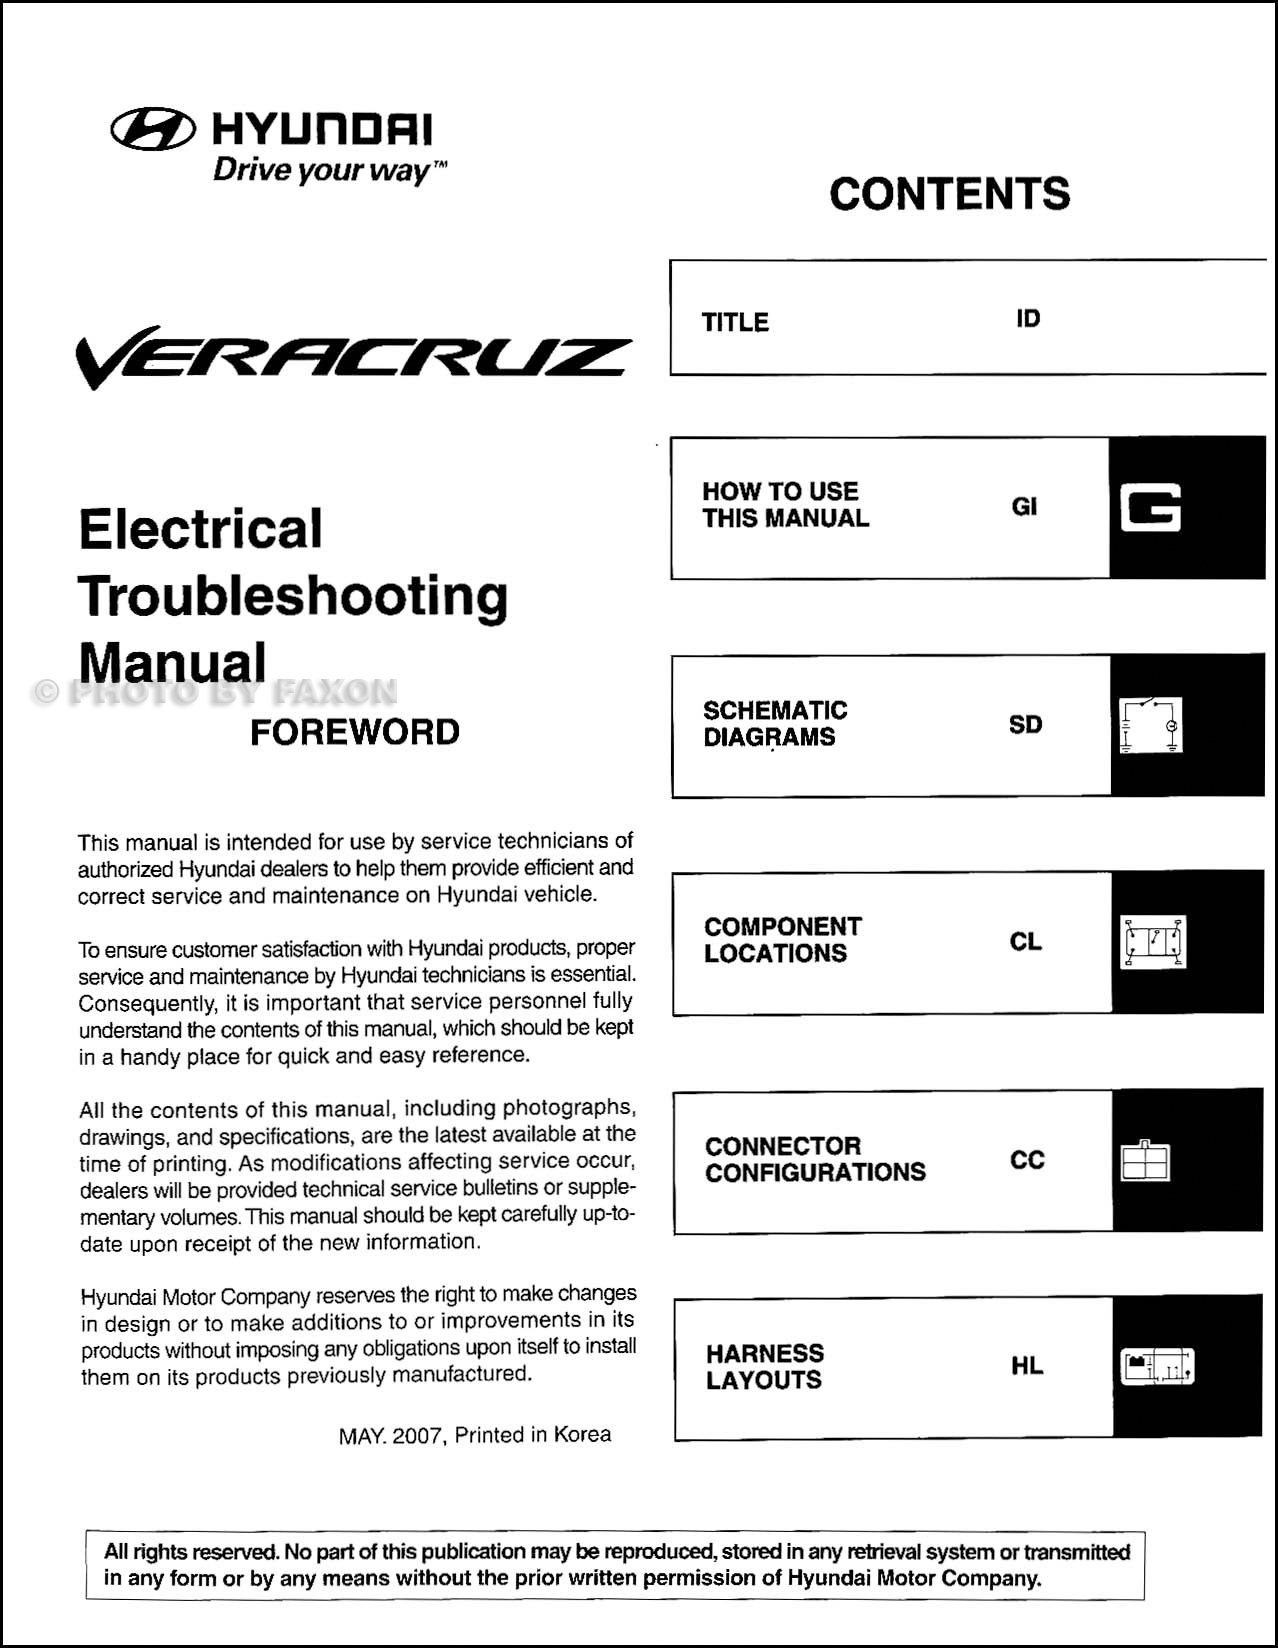 hyundai veracruz wiring diagram 31 wiring diagram images 2008 Ford F350 Wiring  Diagram 2008 Mazda 3 Wiring Diagram